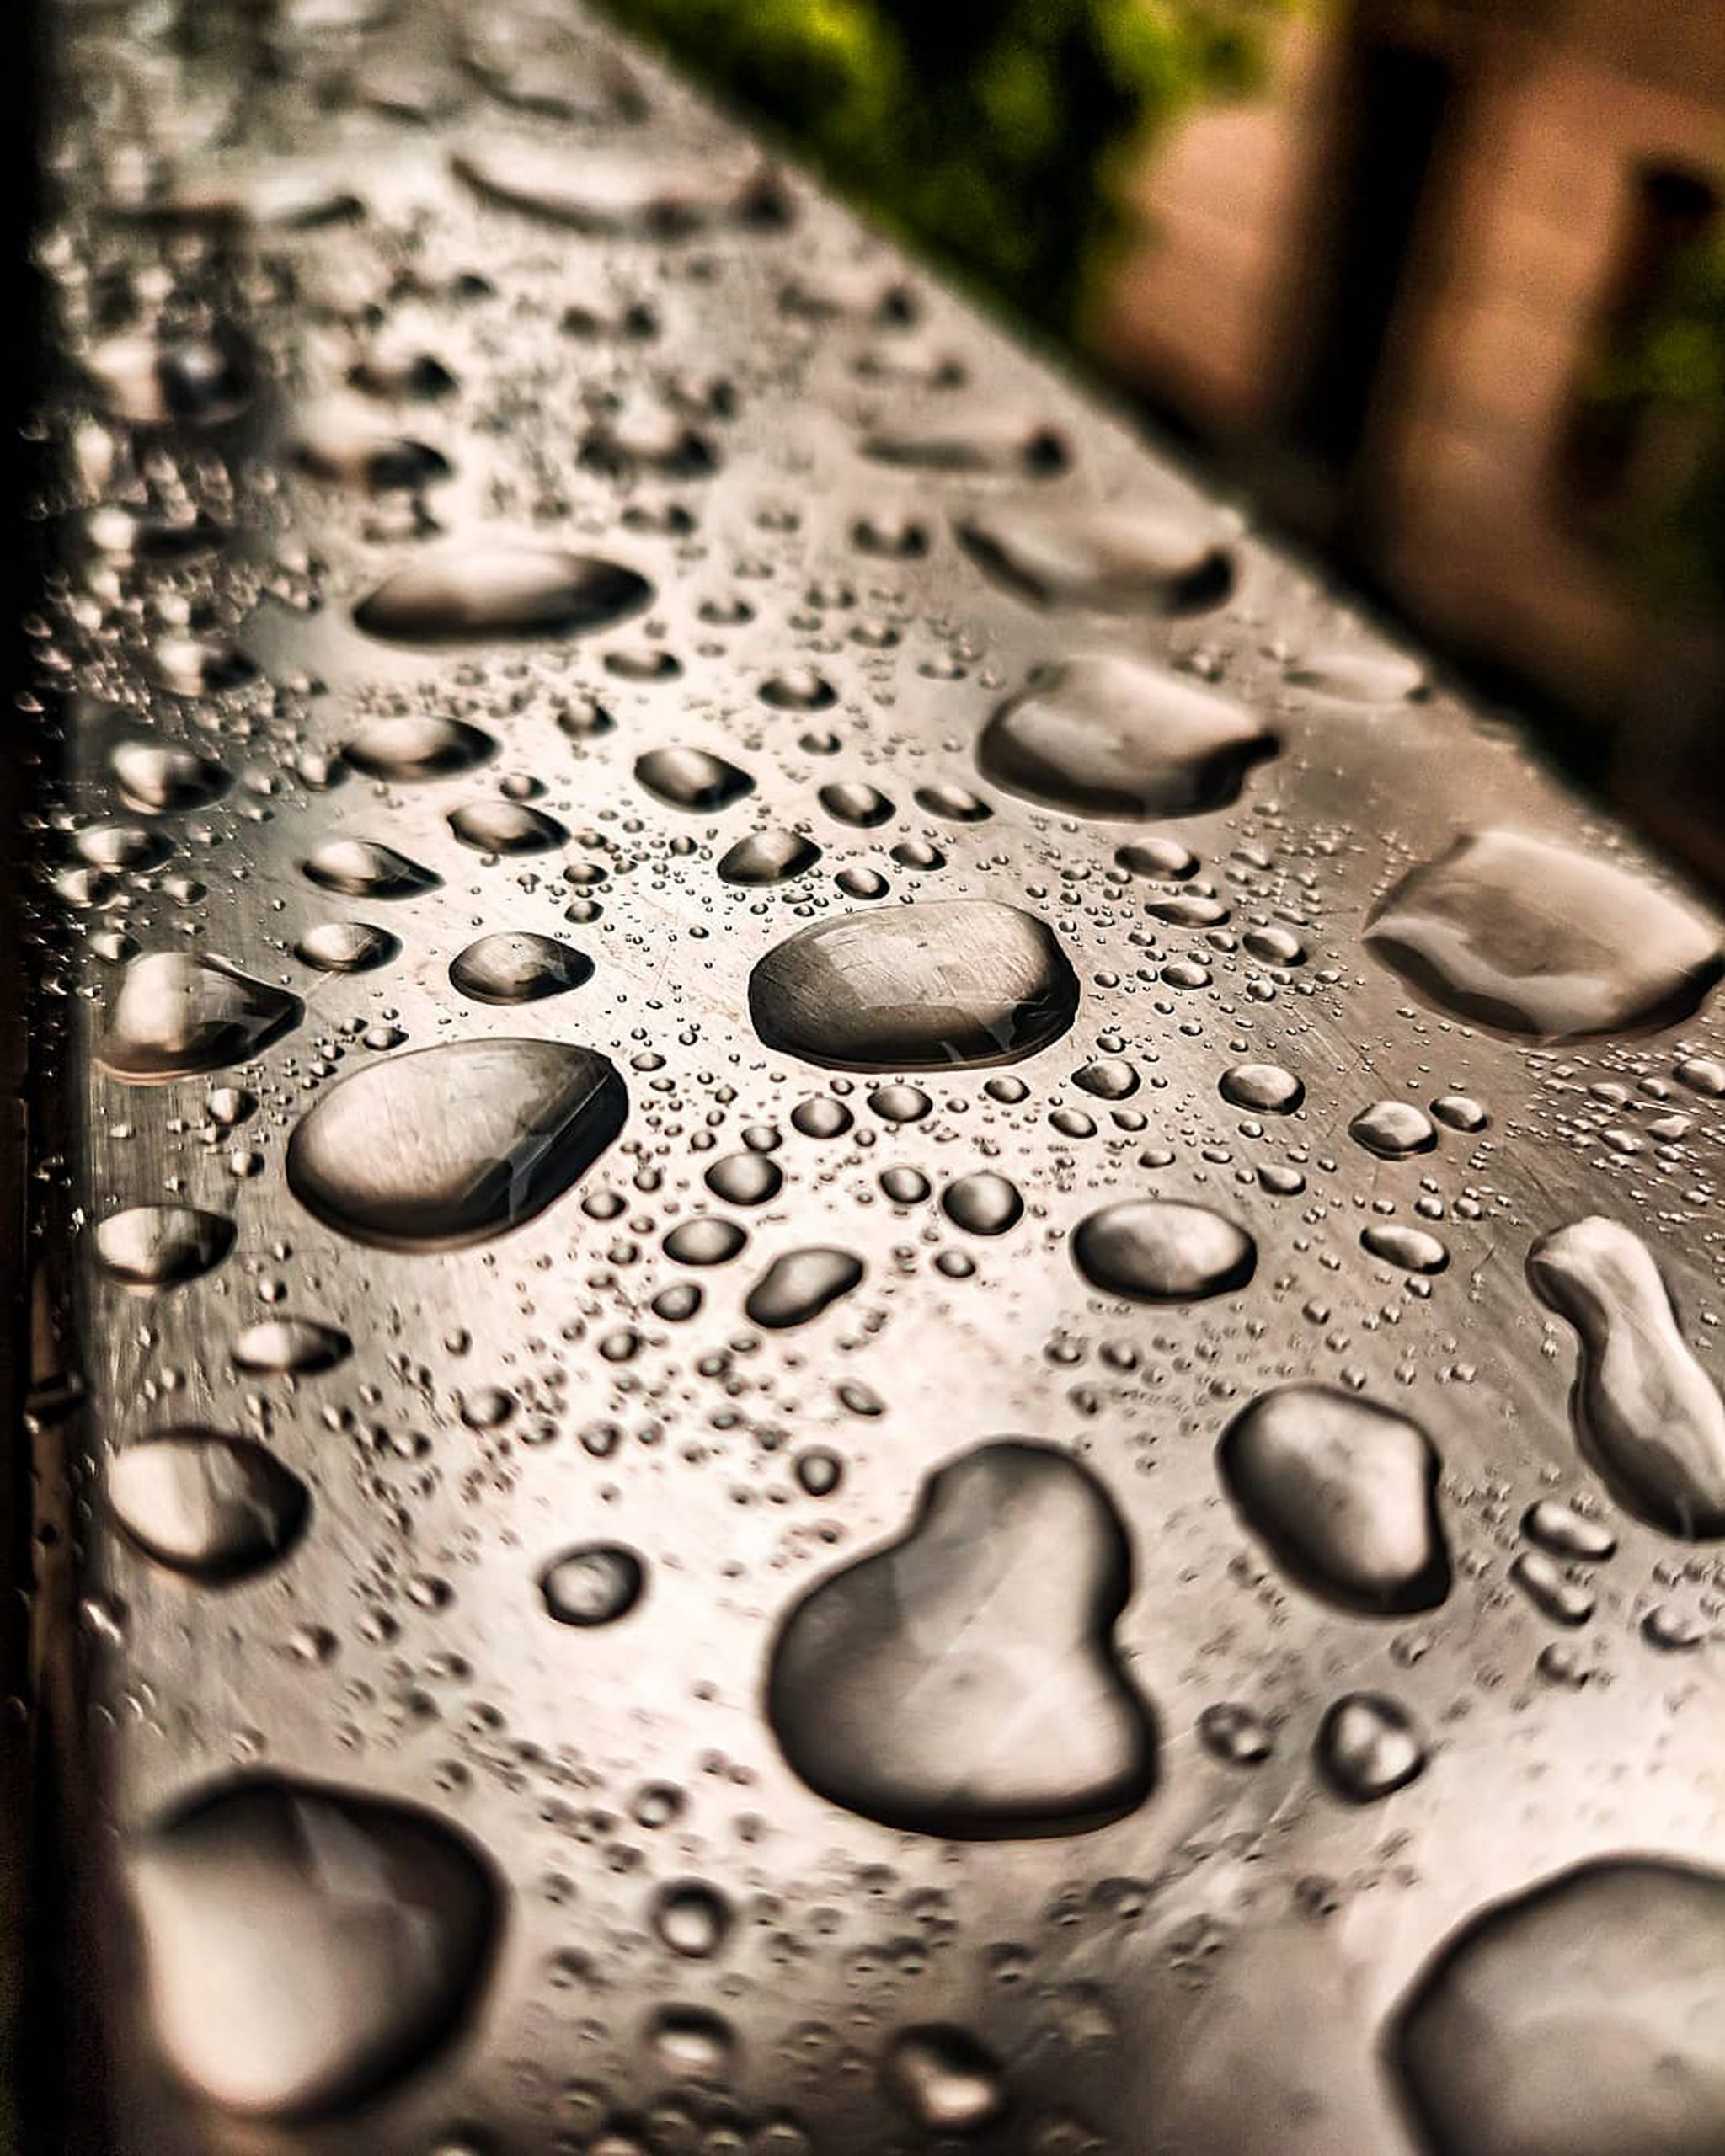 Water droplets in the Steel Grills on Focus